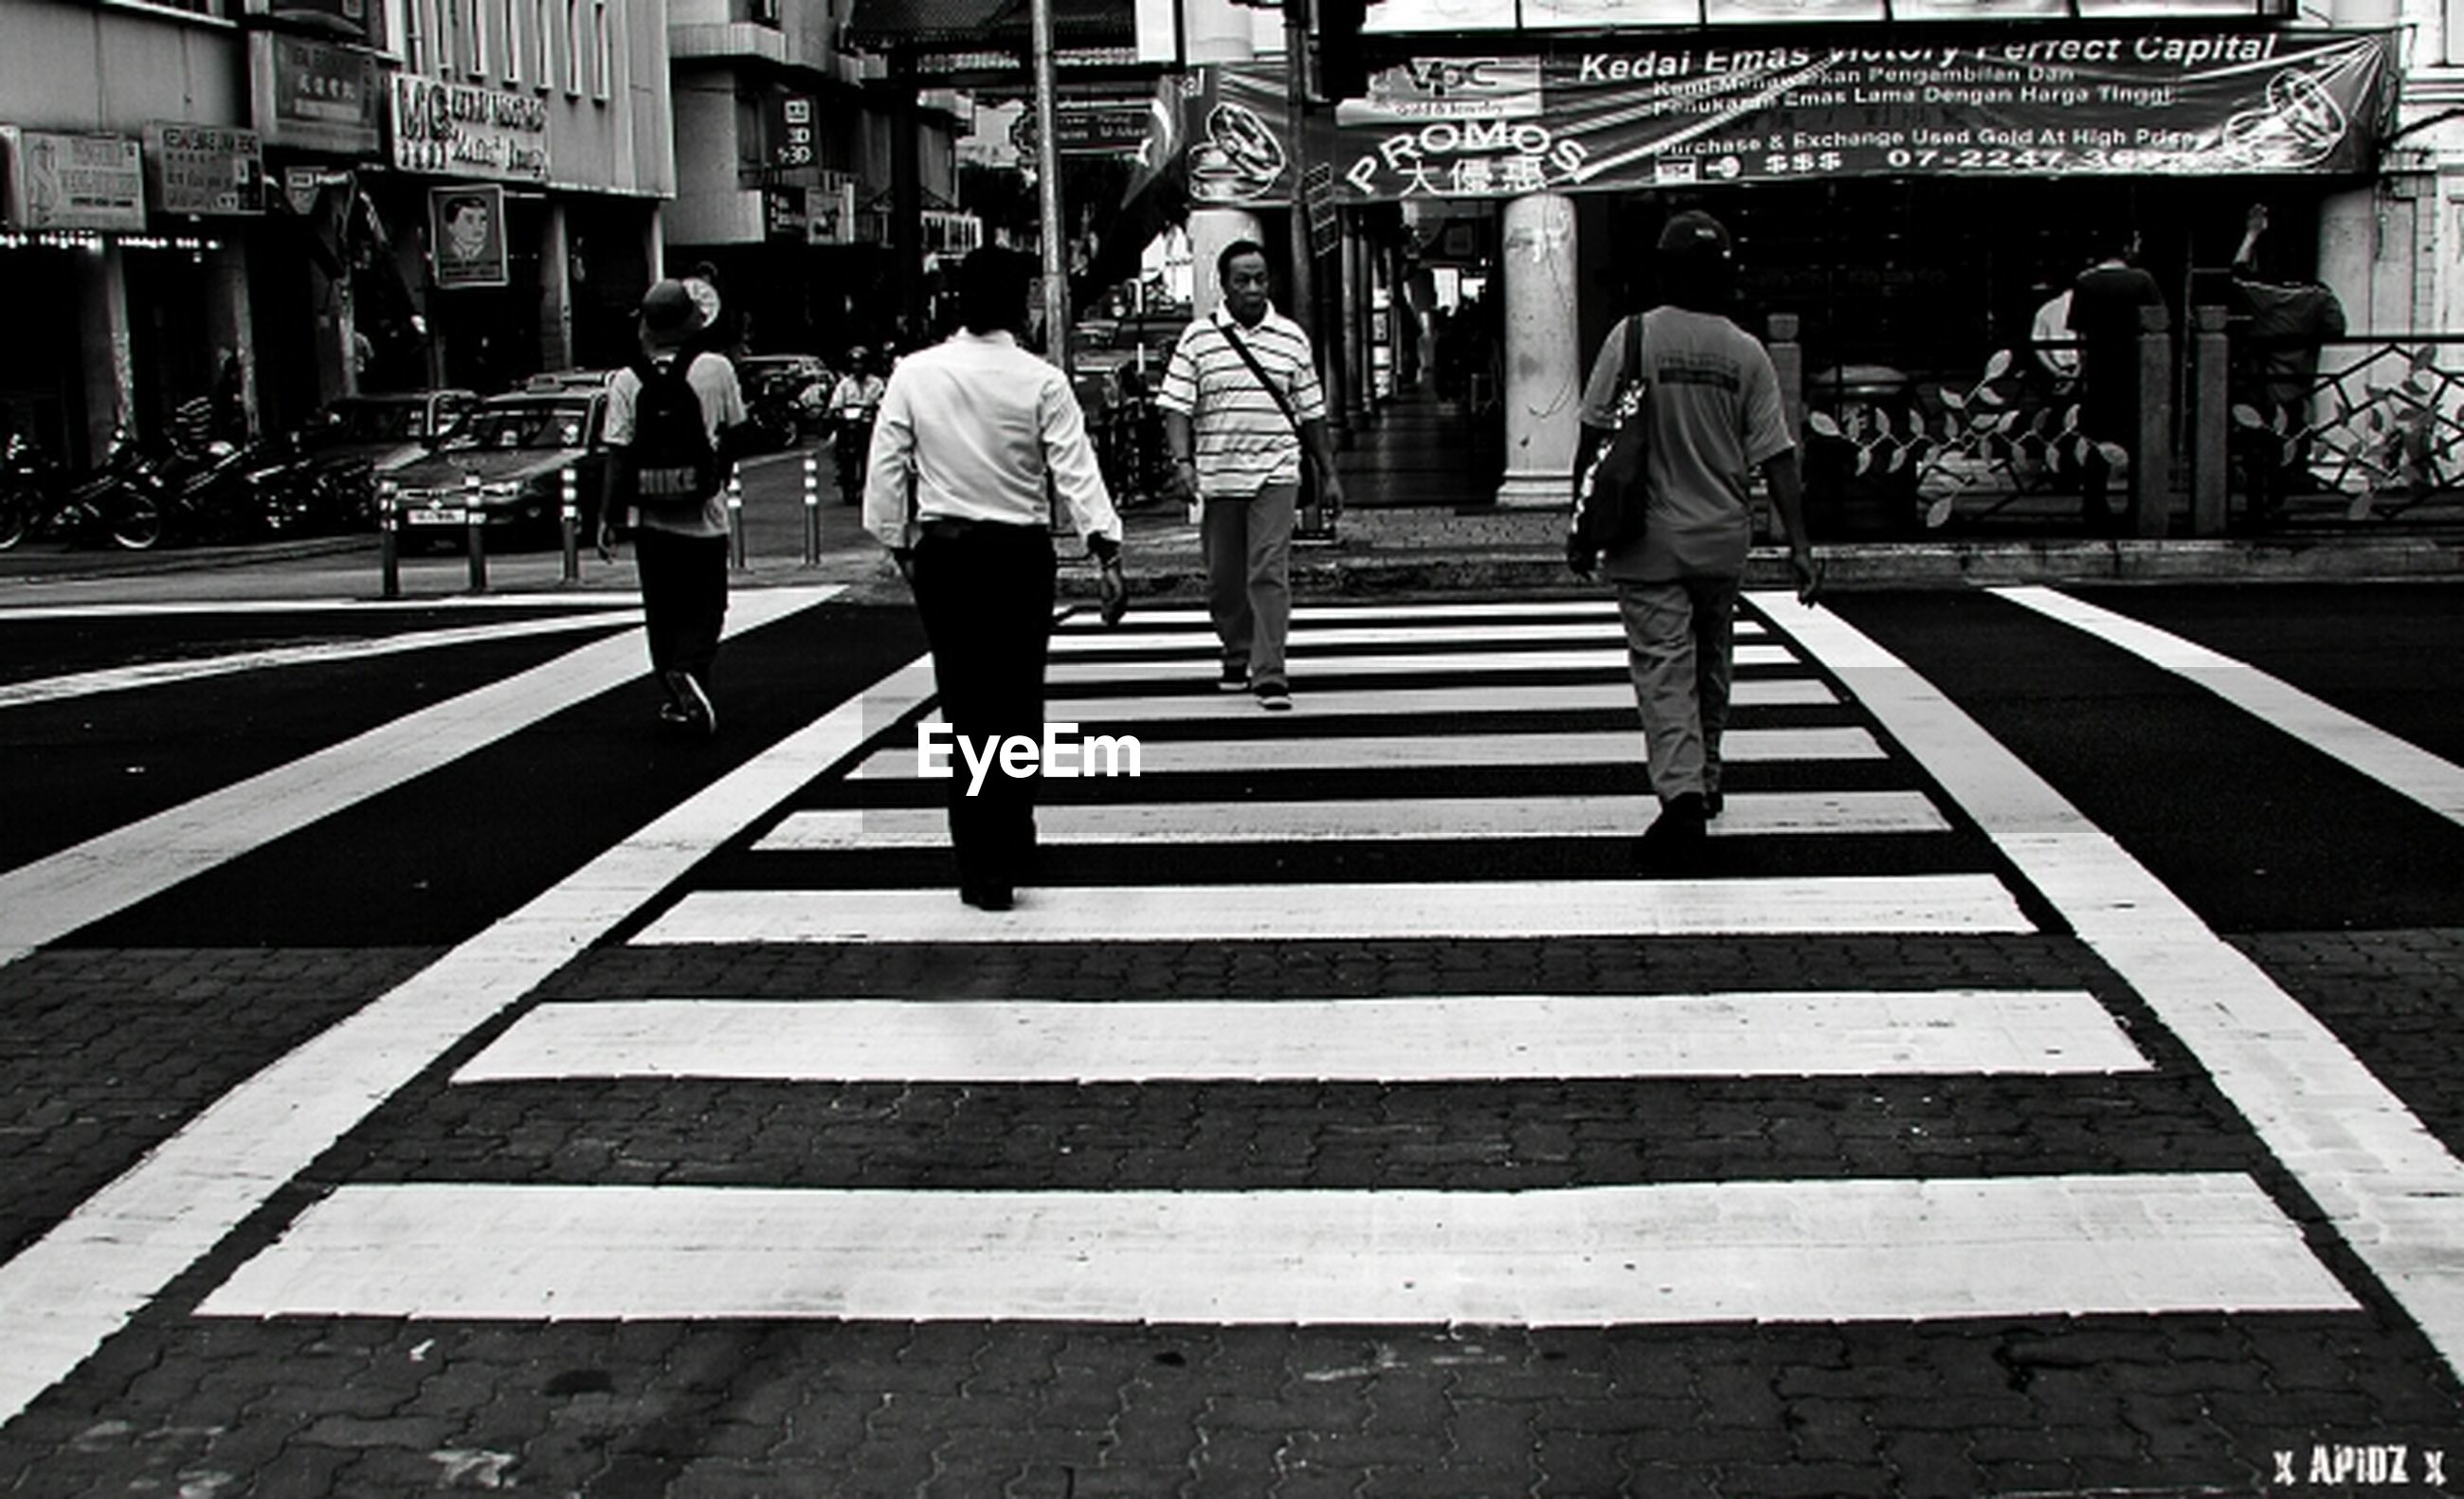 walking, rear view, men, person, street, city, full length, lifestyles, city life, building exterior, zebra crossing, built structure, leisure activity, road marking, architecture, casual clothing, road, the way forward, day